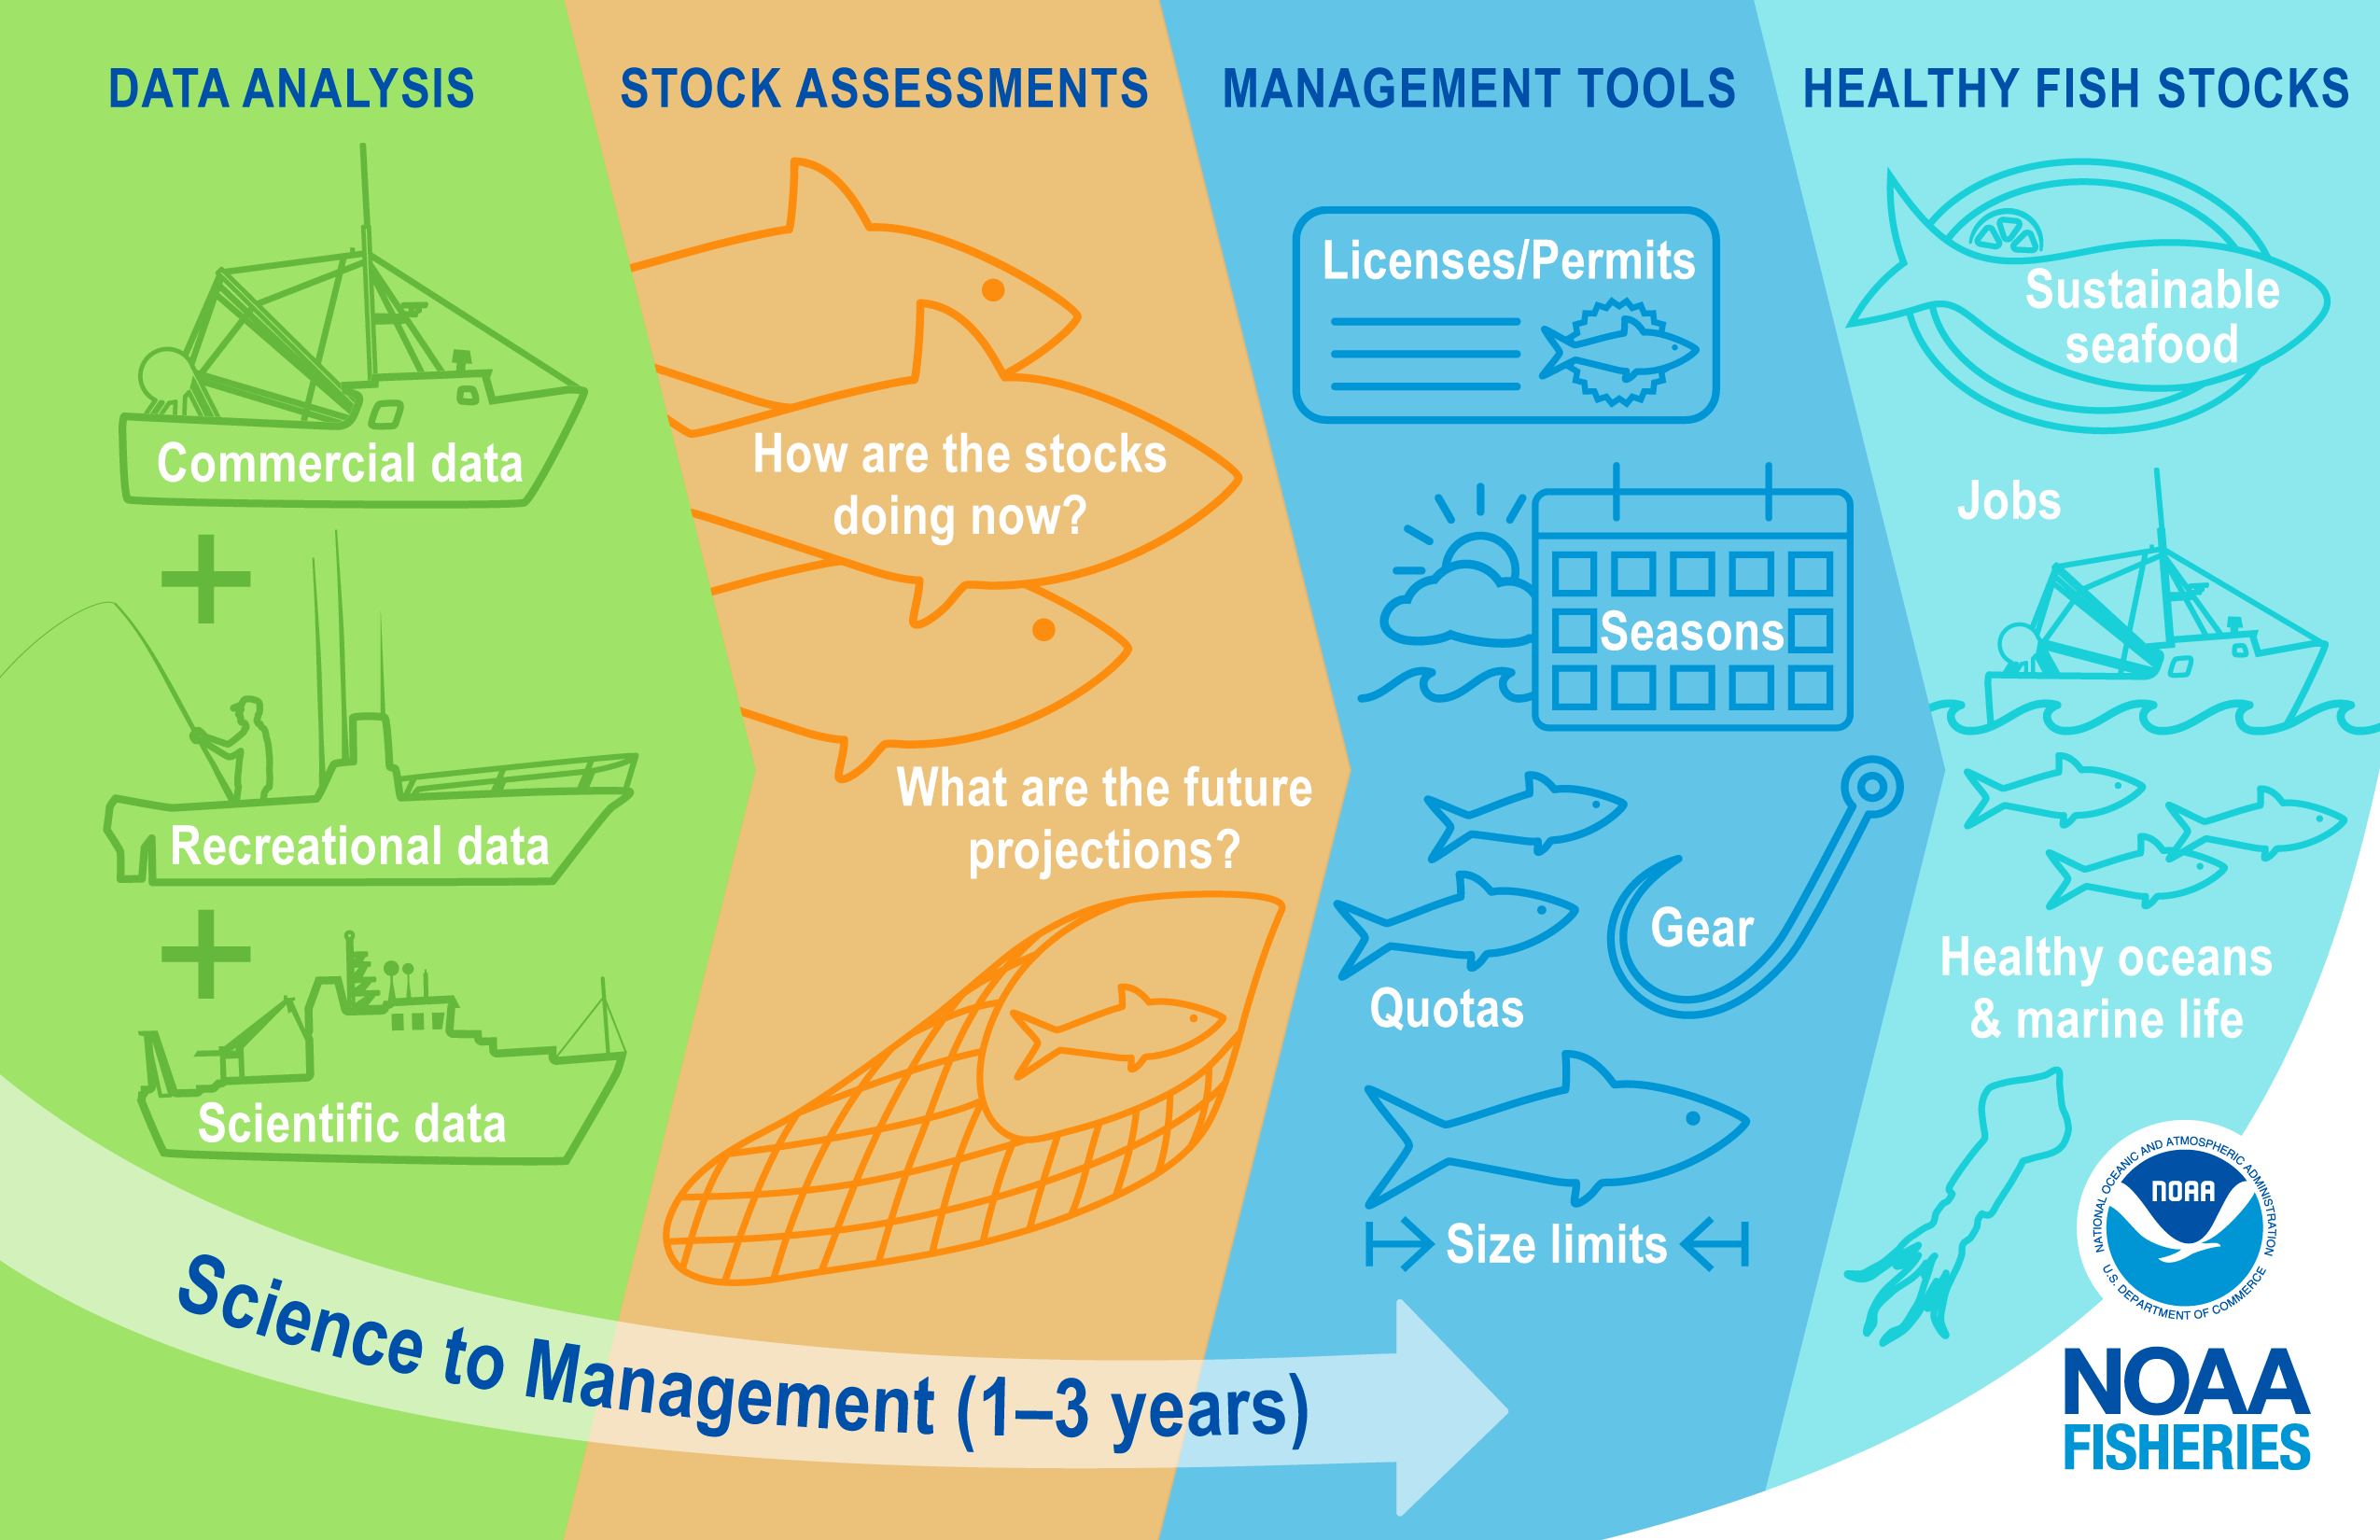 """Science to Management The second image has four sections with arrows to show the progression from data analysis to stock assessments to management advice to healthy fish stocks. Commercial data, recreational data, and scientific data inform stock assessments and are represented by outlines of the three different types of vessels. Stock assessments answer questions including, """"How are the stocks doing now?"""" and """"What are the future projections?"""" and this section has outlines of fish and a fishing net. Stock"""